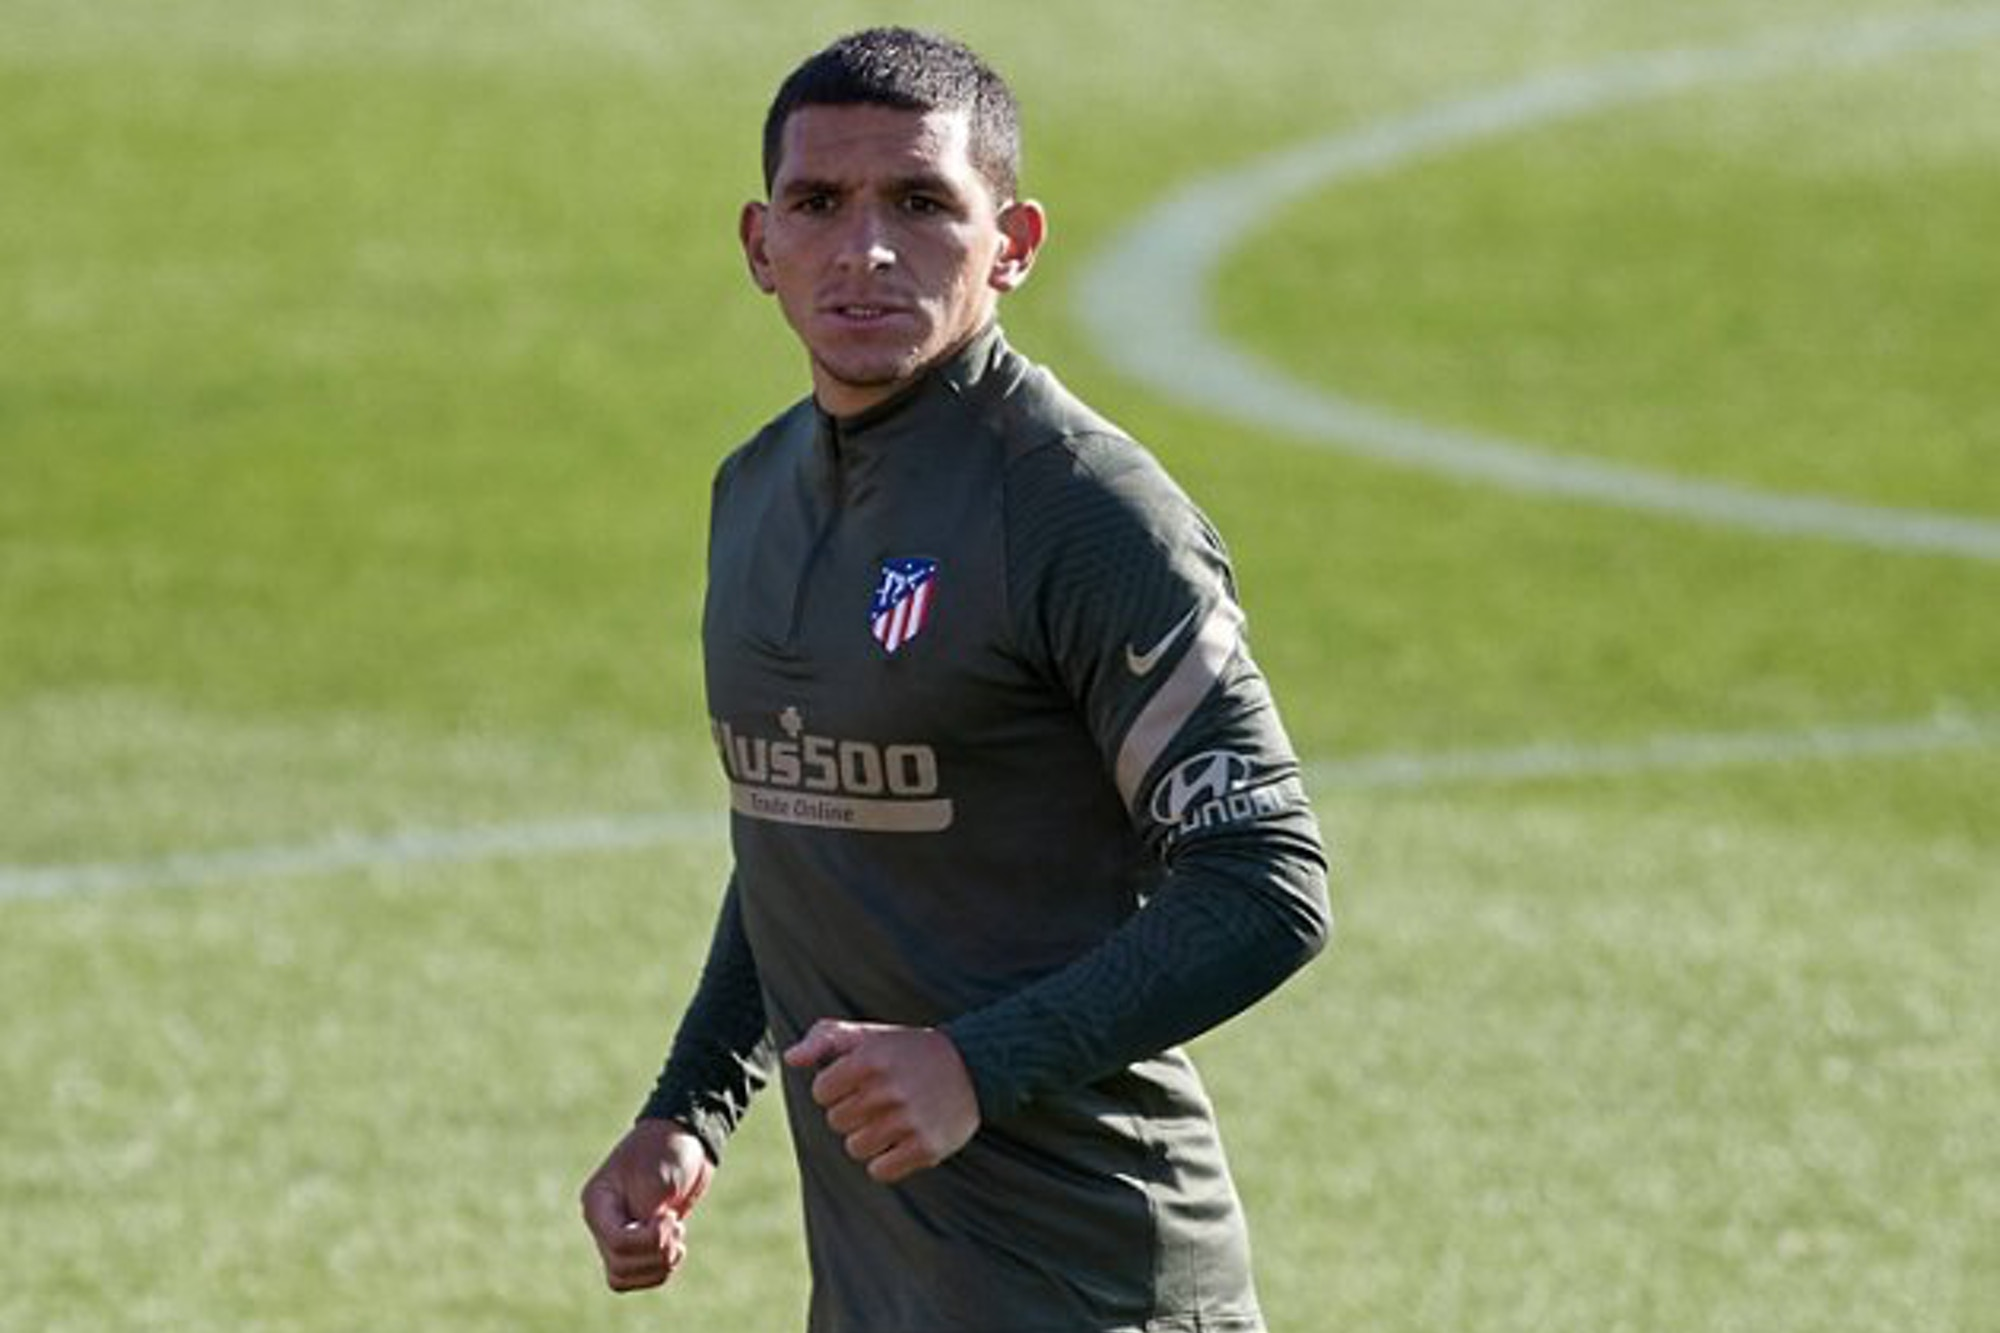 Arsenal midfielder Lucas Torreira wanted by Fiorentina